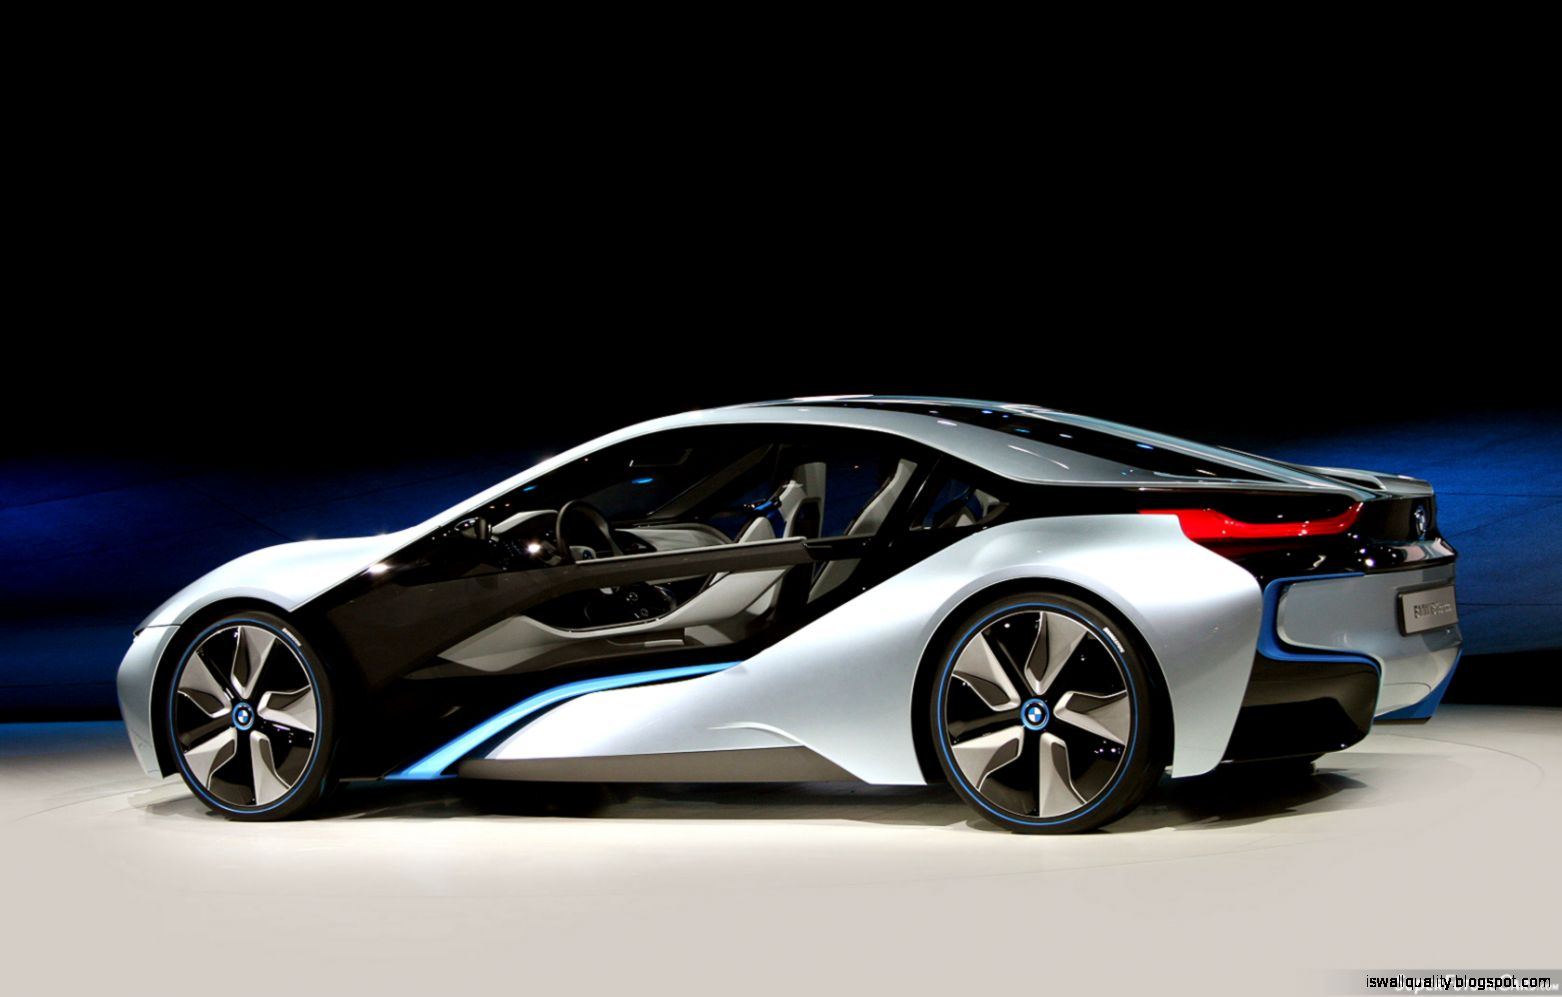 Bmw I8 Interior Night Wallpaper Wallpapers Quality